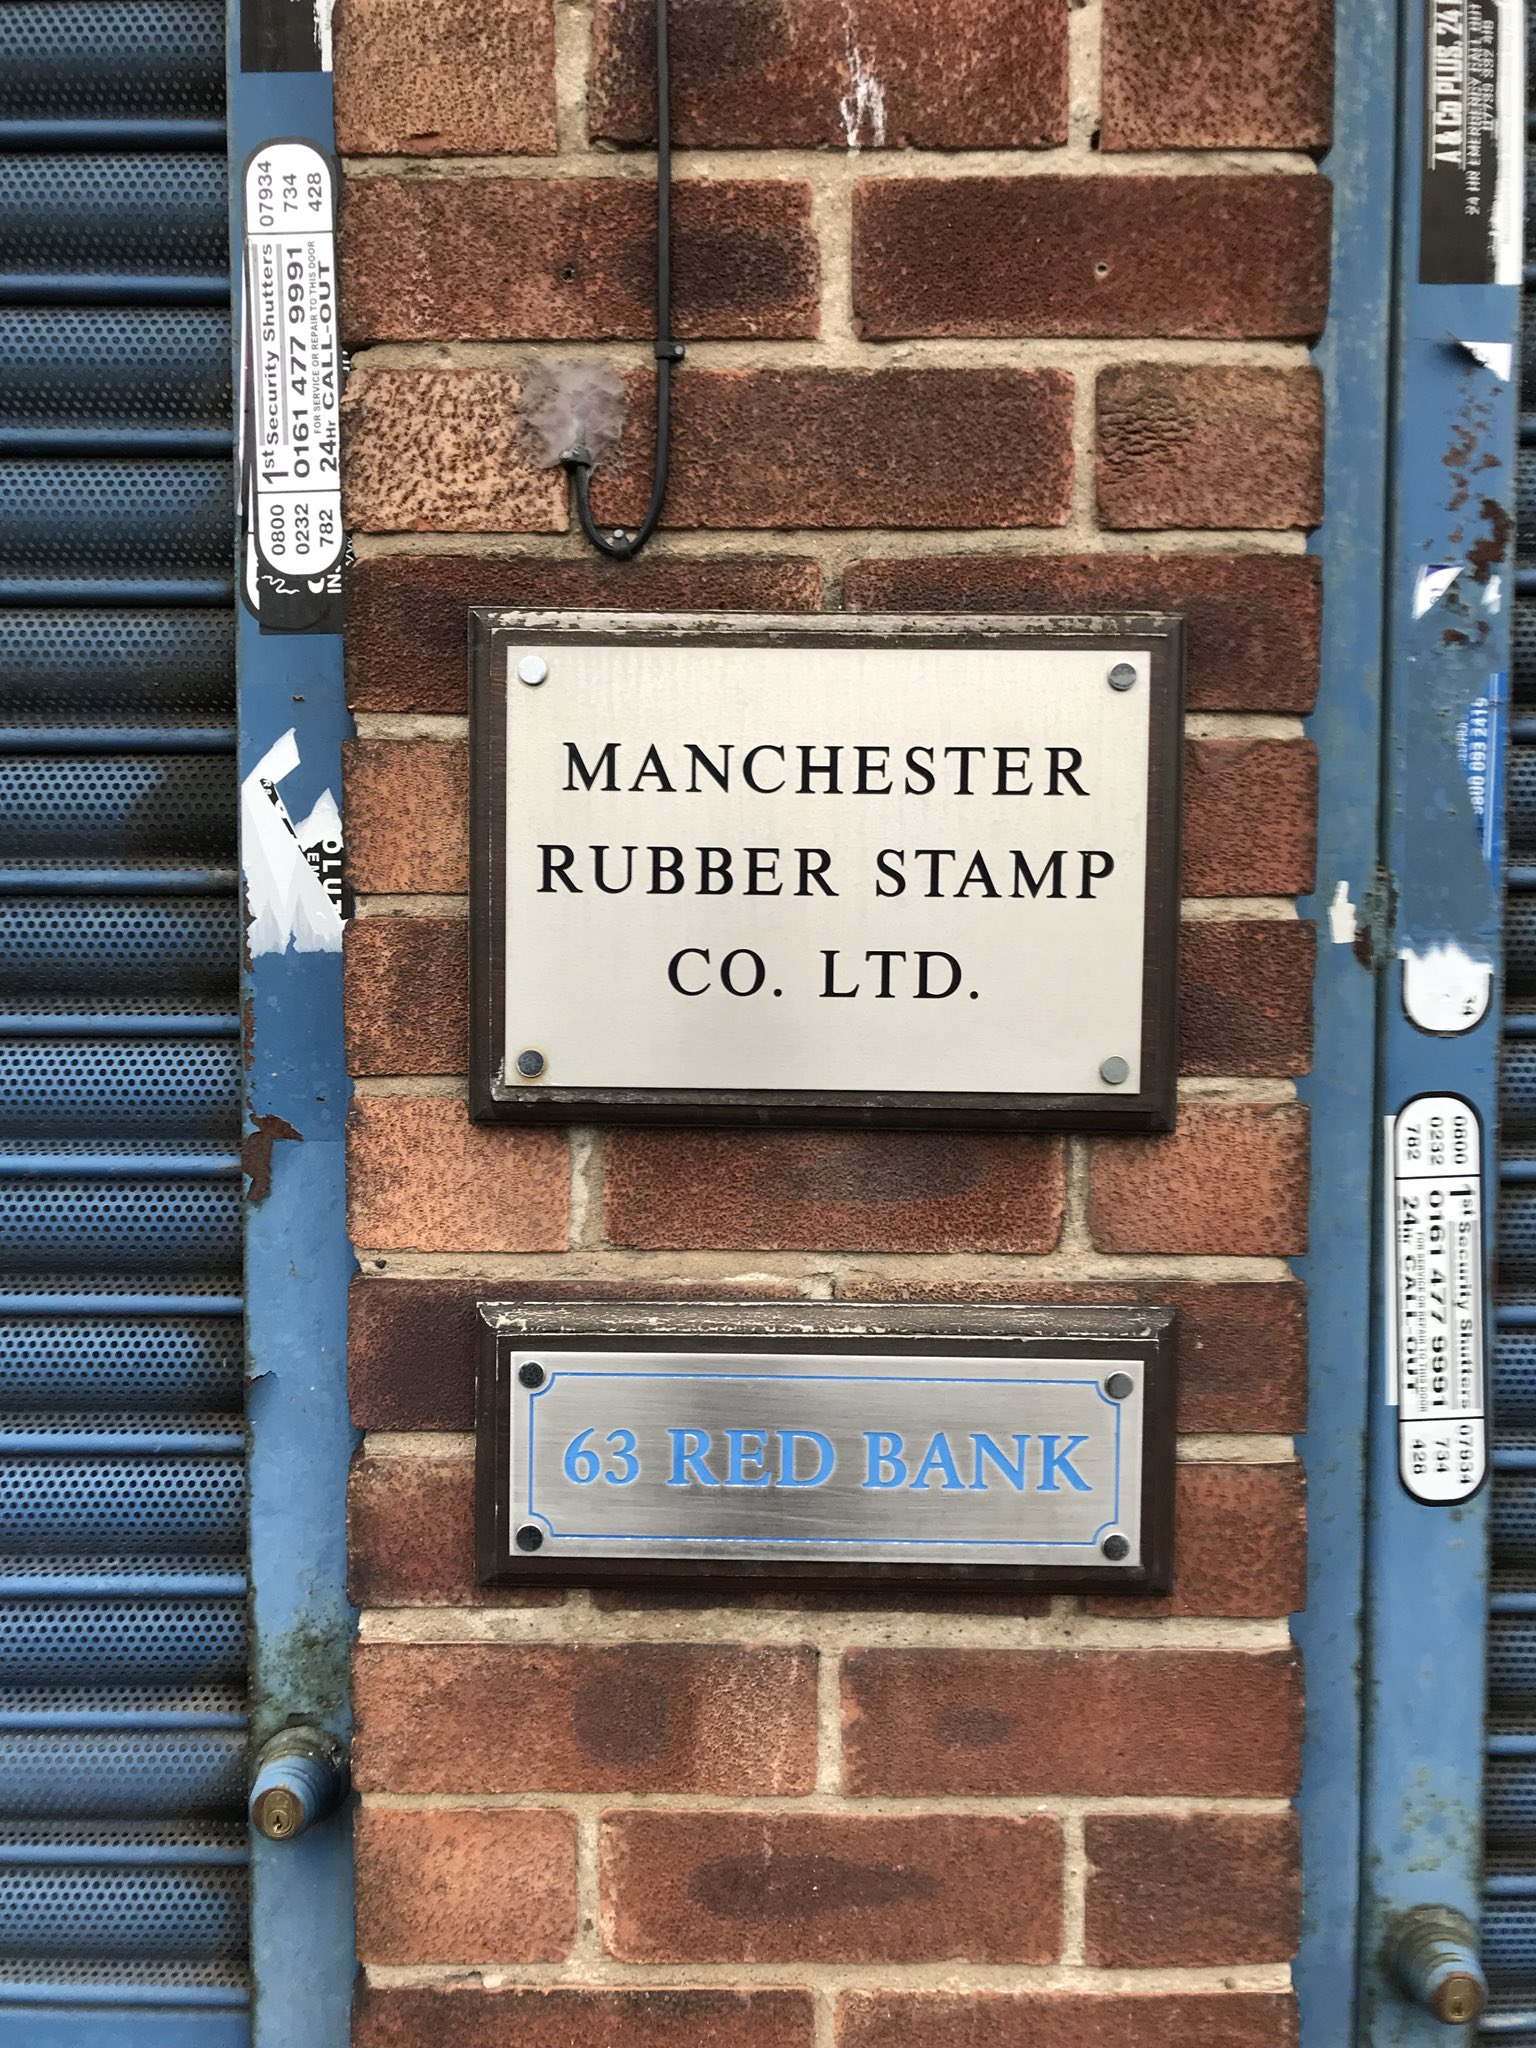 Tom Clarke A Twitter Good To Revisit The Manchester Rubber Stamp Company